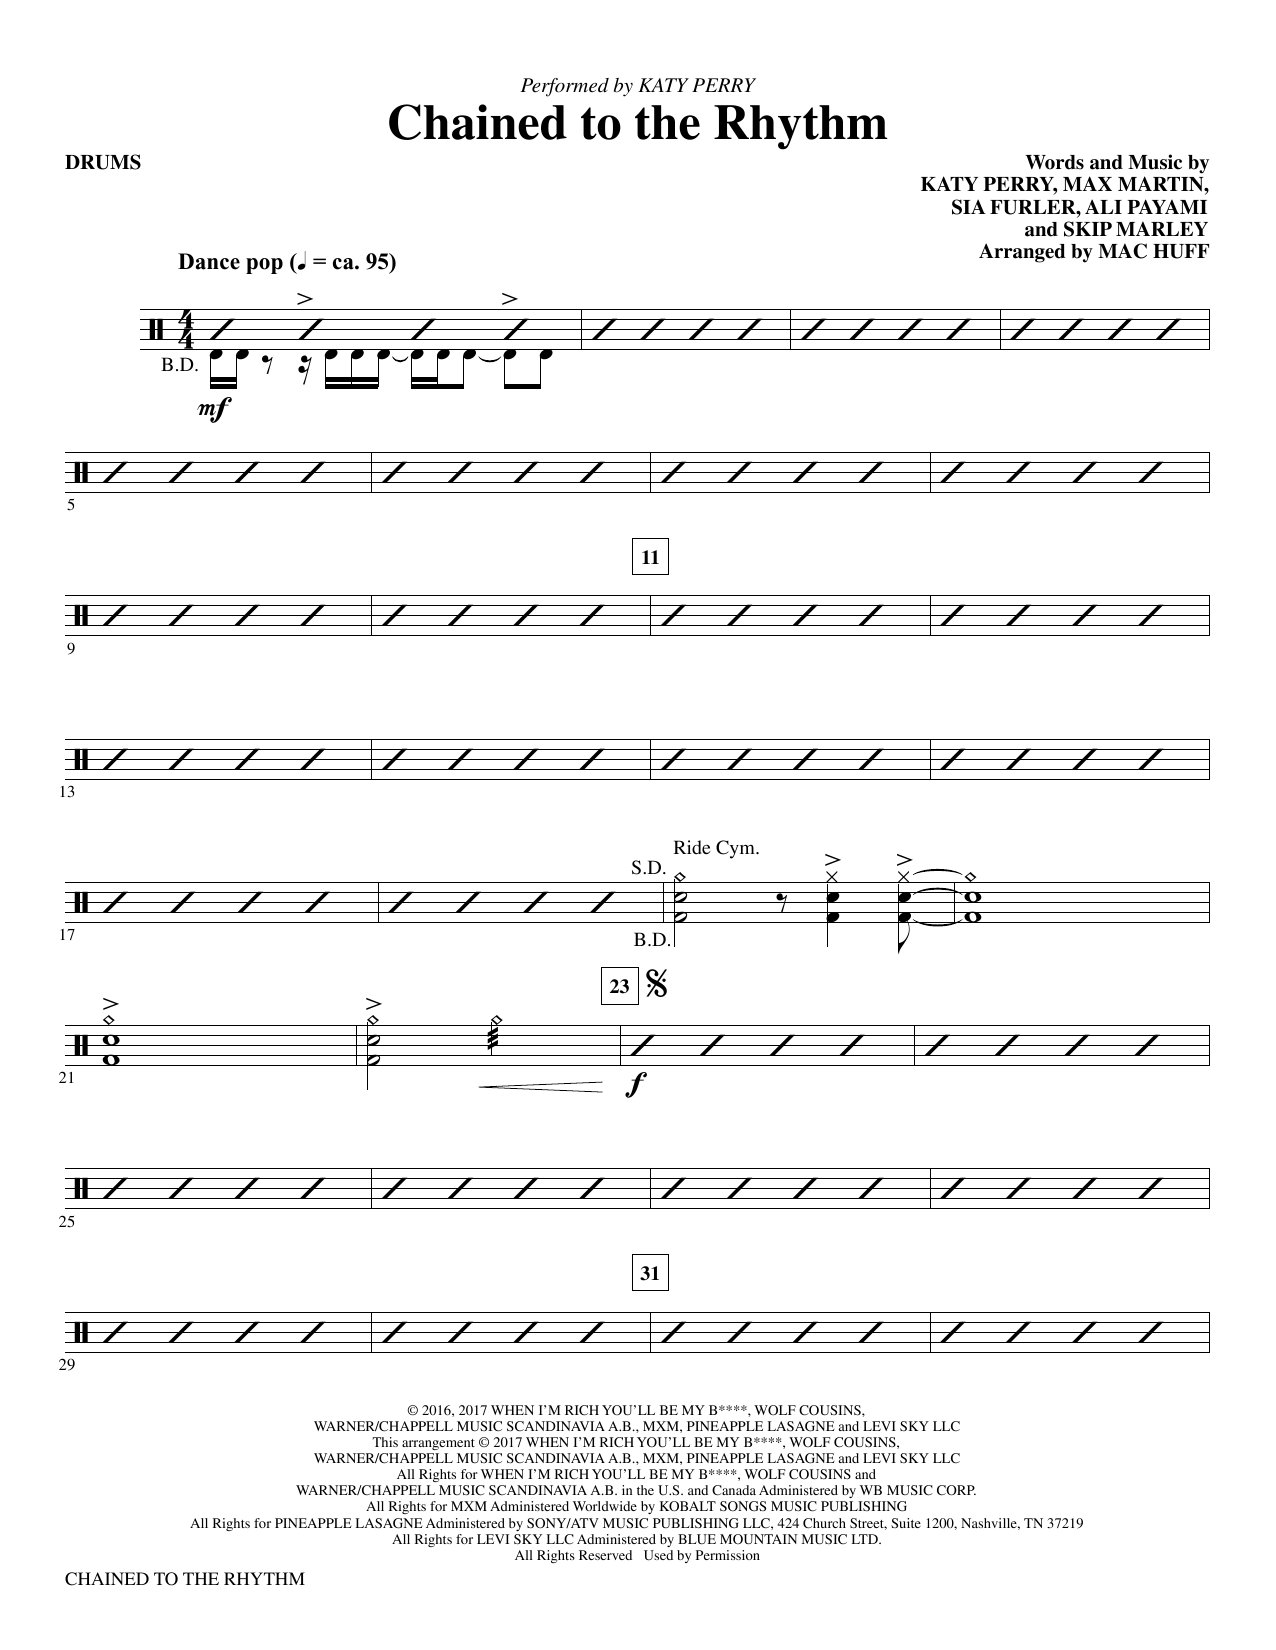 Mac Huff Chained to the Rhythm - Drums sheet music notes and chords. Download Printable PDF.